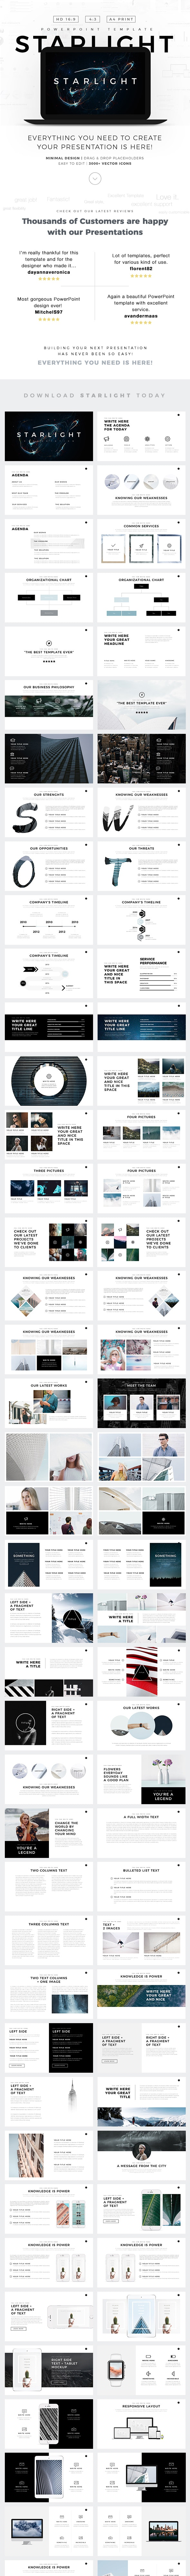 Starlight Minimal PowerPoint Template Pitch Deck - PowerPoint Templates Presentation Templates